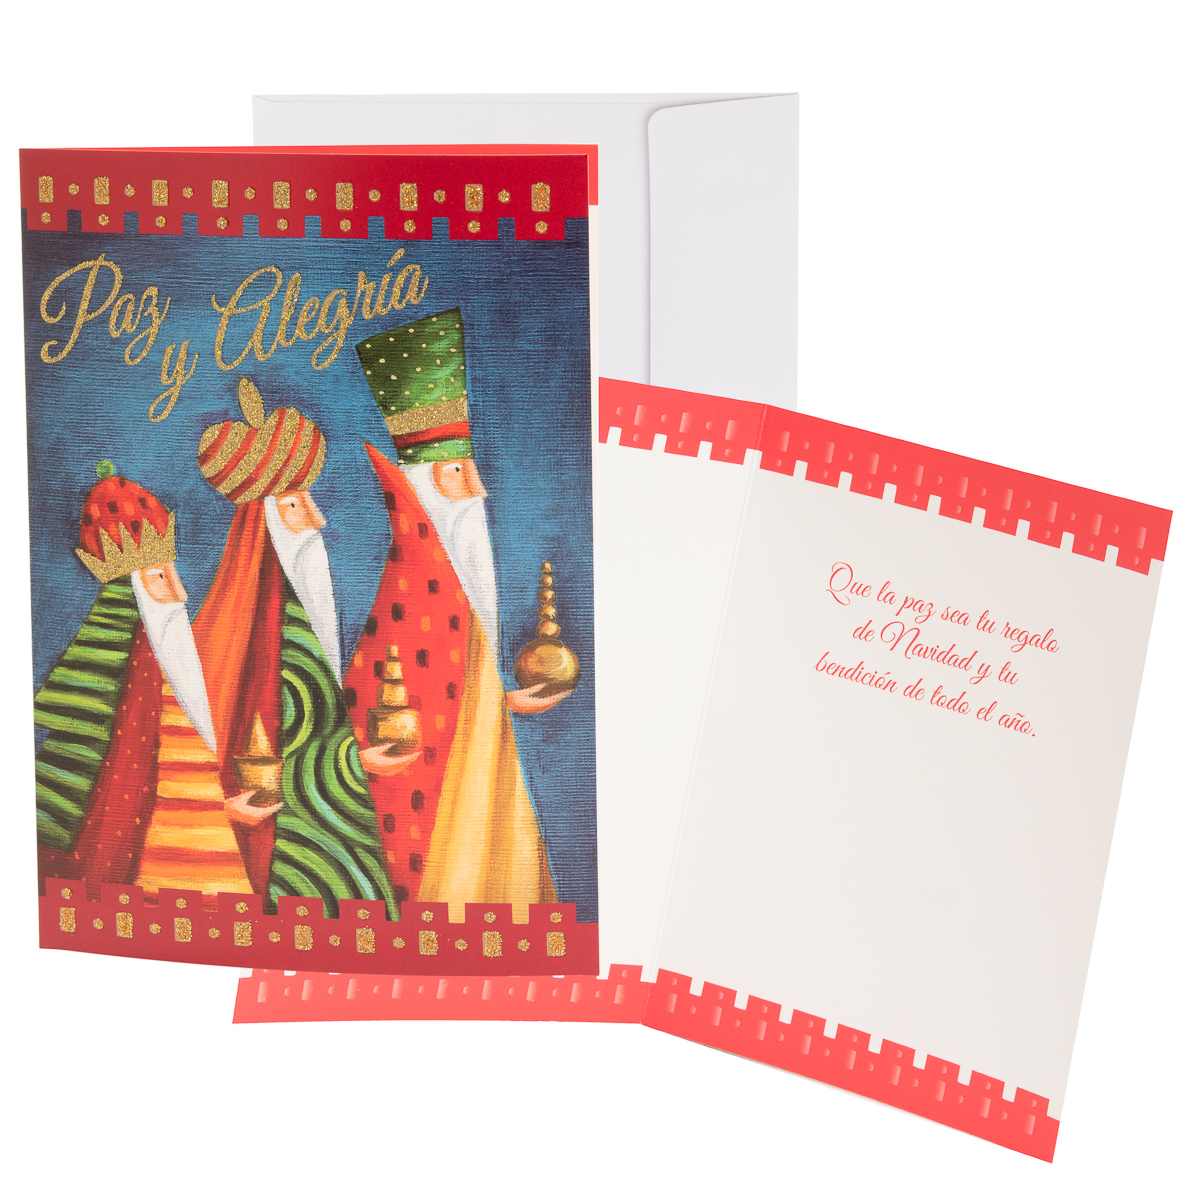 48pk-Merry-Christmas-Cards-Bulk-Assortment-Holiday-Card-Pack-with-Foil-amp-Glitter thumbnail 24